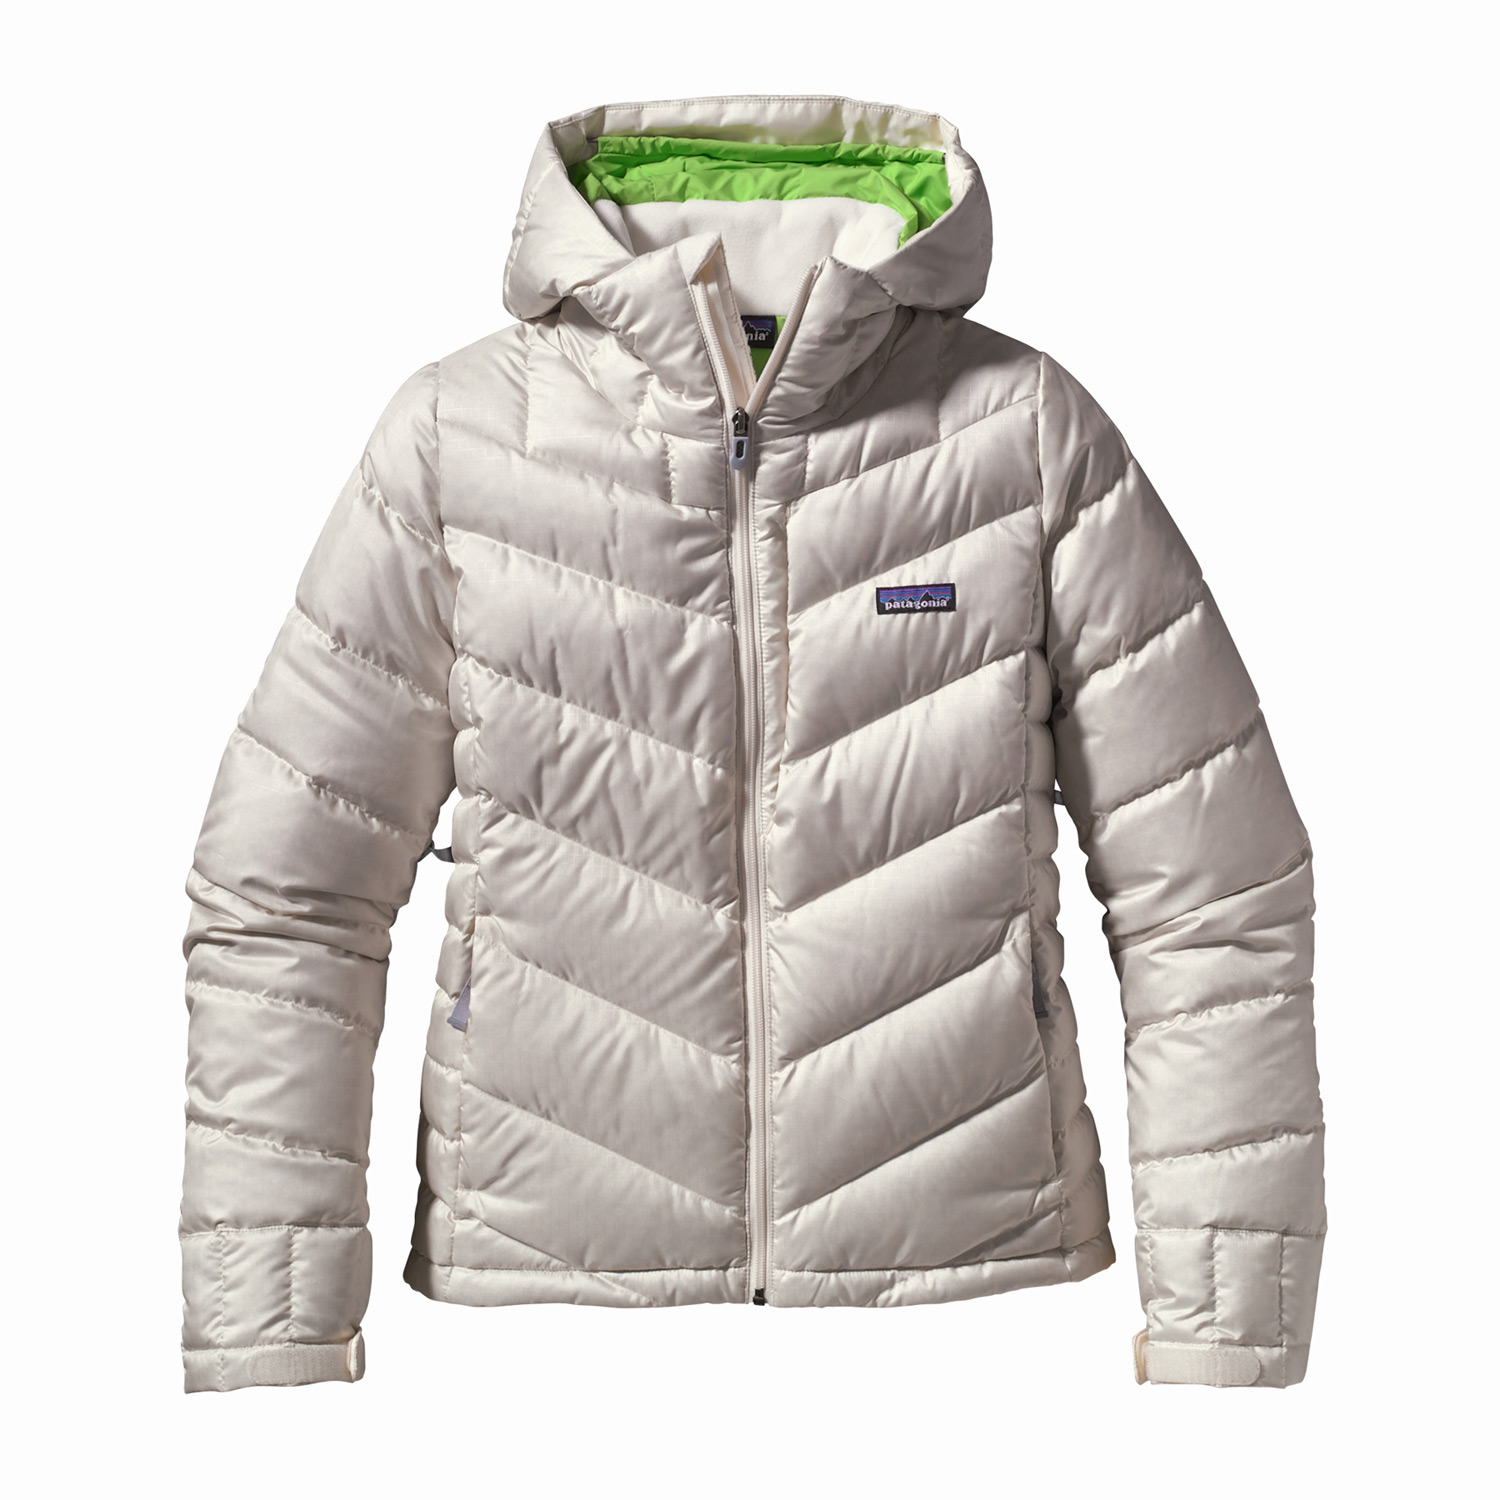 Ski The Patagonia Pipe Down Ski Jacket is a cute down jacket, made of polyester ripstop, and insulated with 600-fill-power goose down provides warmth for all-day riding.Key Features of the Patagonia Pipe Down Ski Jacket: Soft polyester ripstop shell with a light water-resistant coating, and a Deluge DWR (durable water repellent) finish to resist moisture and wet snow 600-fill-power goose down insulation is plush, compressible and very warm Fixed helmet-compatible hood with single-hand drawcord adjustment; high fleece-lined collar protects against wind and snow, keeps neck cozy and warm Pit zips quickly release heat; articulated arms improve mobility Removable powder skirt is adjustable and fully featured; webbing loops connect to any Patagonia Ski/ Snowboard Pants to keep the snow out and the skirt down Pockets: Two handwarmers, one chest, one interior drop-in and one interior zippered; includes secure, interior media pocket with cable routing Hem can cinch for extra chilly days; drawcord exits into hand pockets for easy adjustments Regular fit (25.2 oz) 714 g Fabric: 2.1-oz 100% microdenier 100% polyester ripstop with a light water-resistant coating and a Deluge DWR finish. Lining: 2-oz 100% polyester plain weave. Insulation: 600-fill-power premium European goose down - $197.95